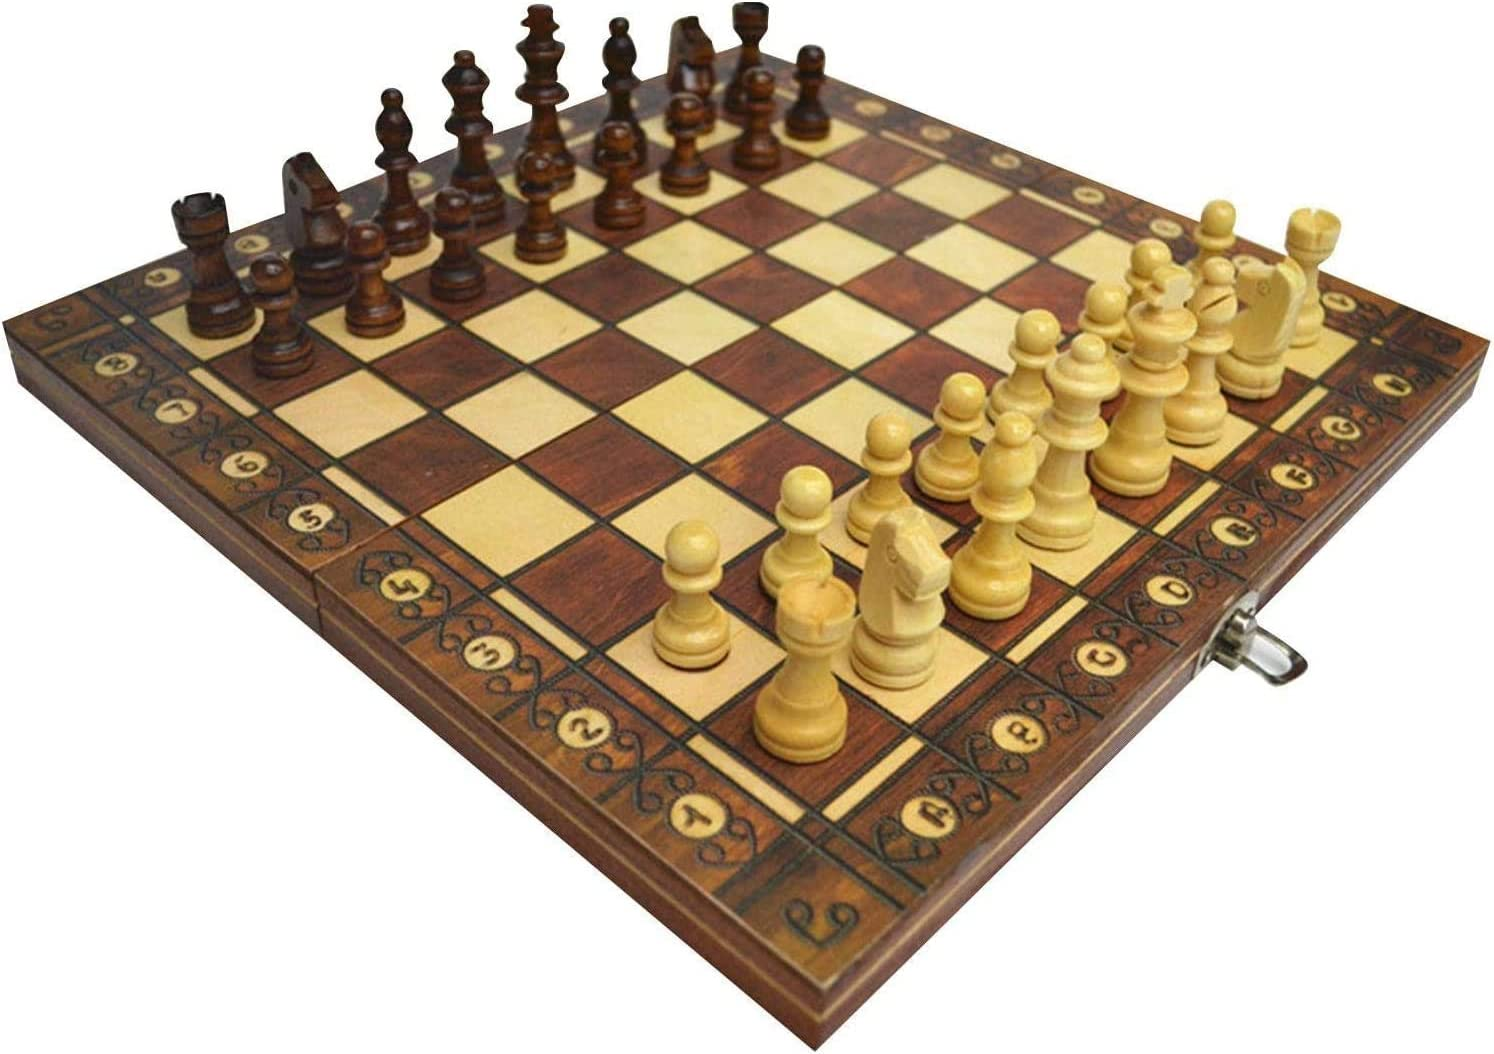 New shop sales GXBCS Chess Set Foldable Board Game a for Indoor Home Sets